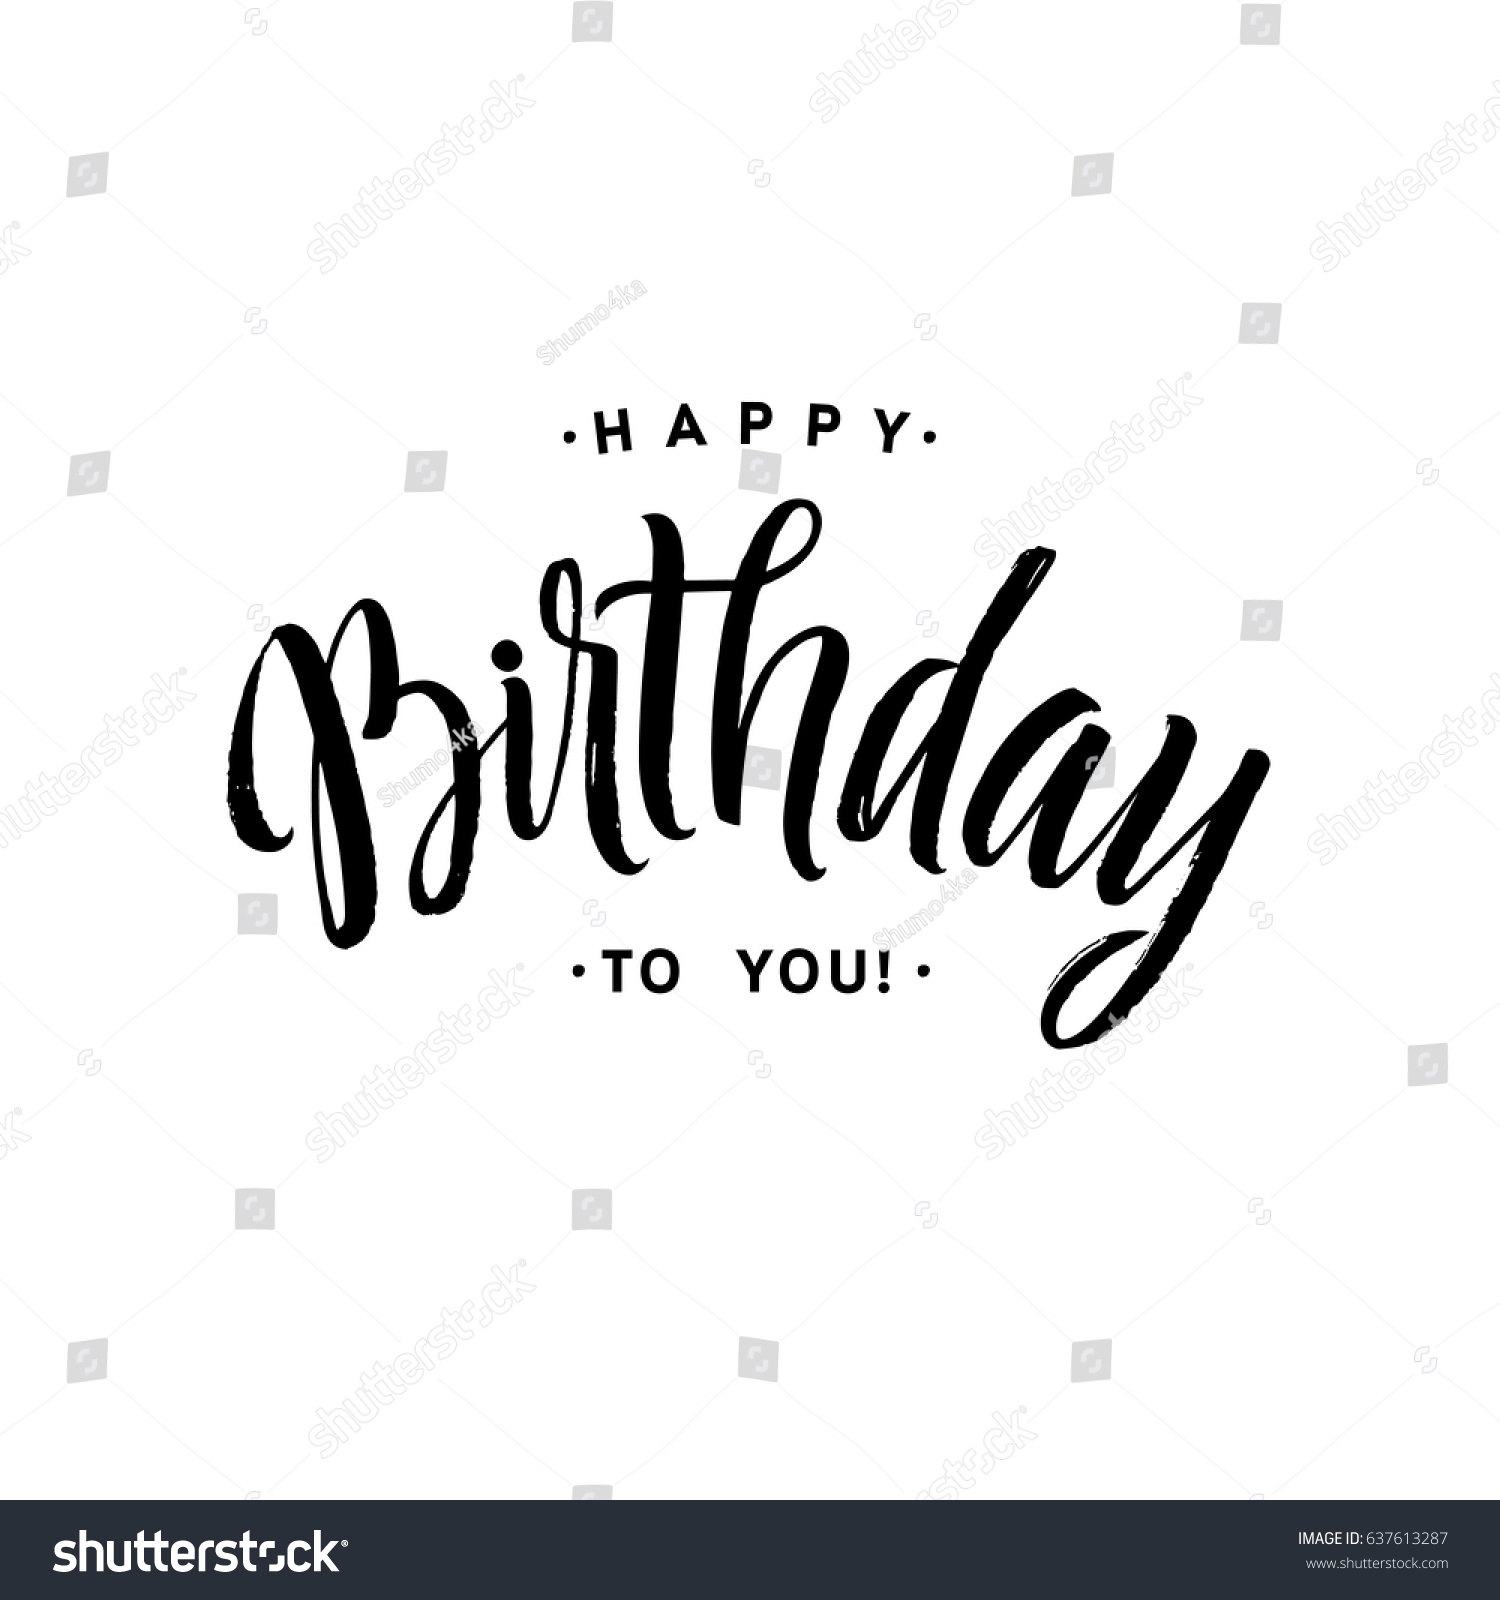 Happy Birthday You Calligraphy Greeting Card Stock Vector